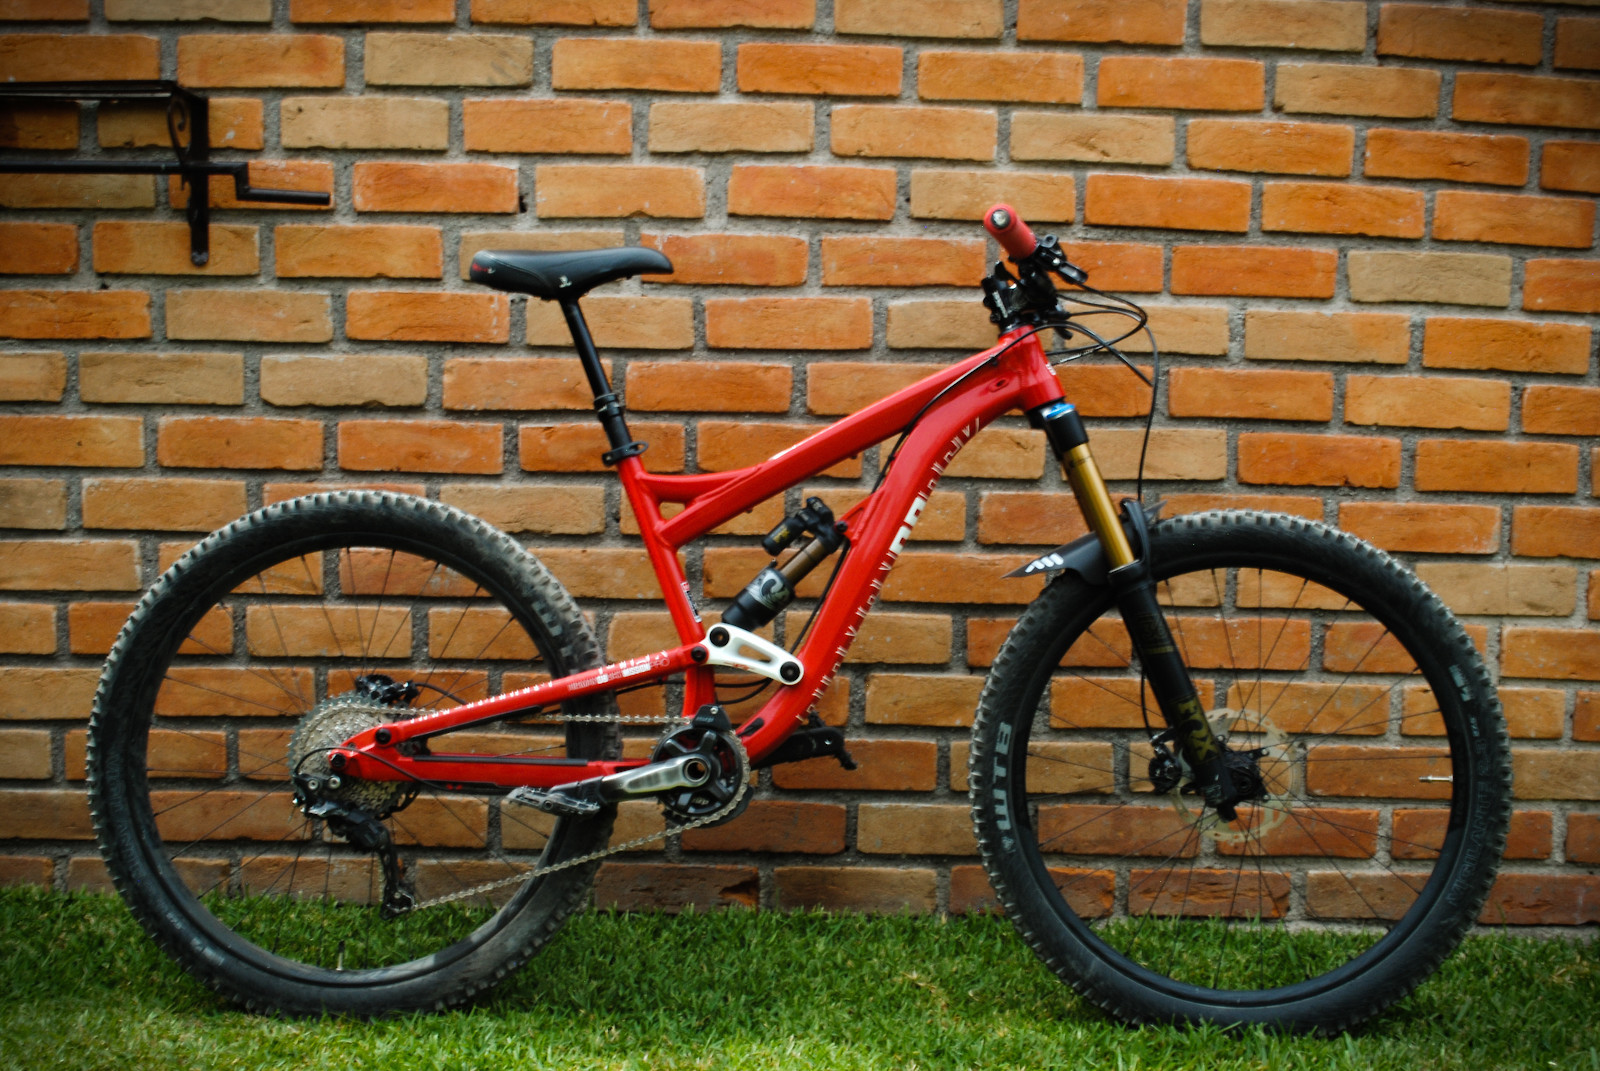 Diamondback Mission Pro - 2019 Vital Bike of the Day Collection - Mountain Biking Pictures - Vital MTB